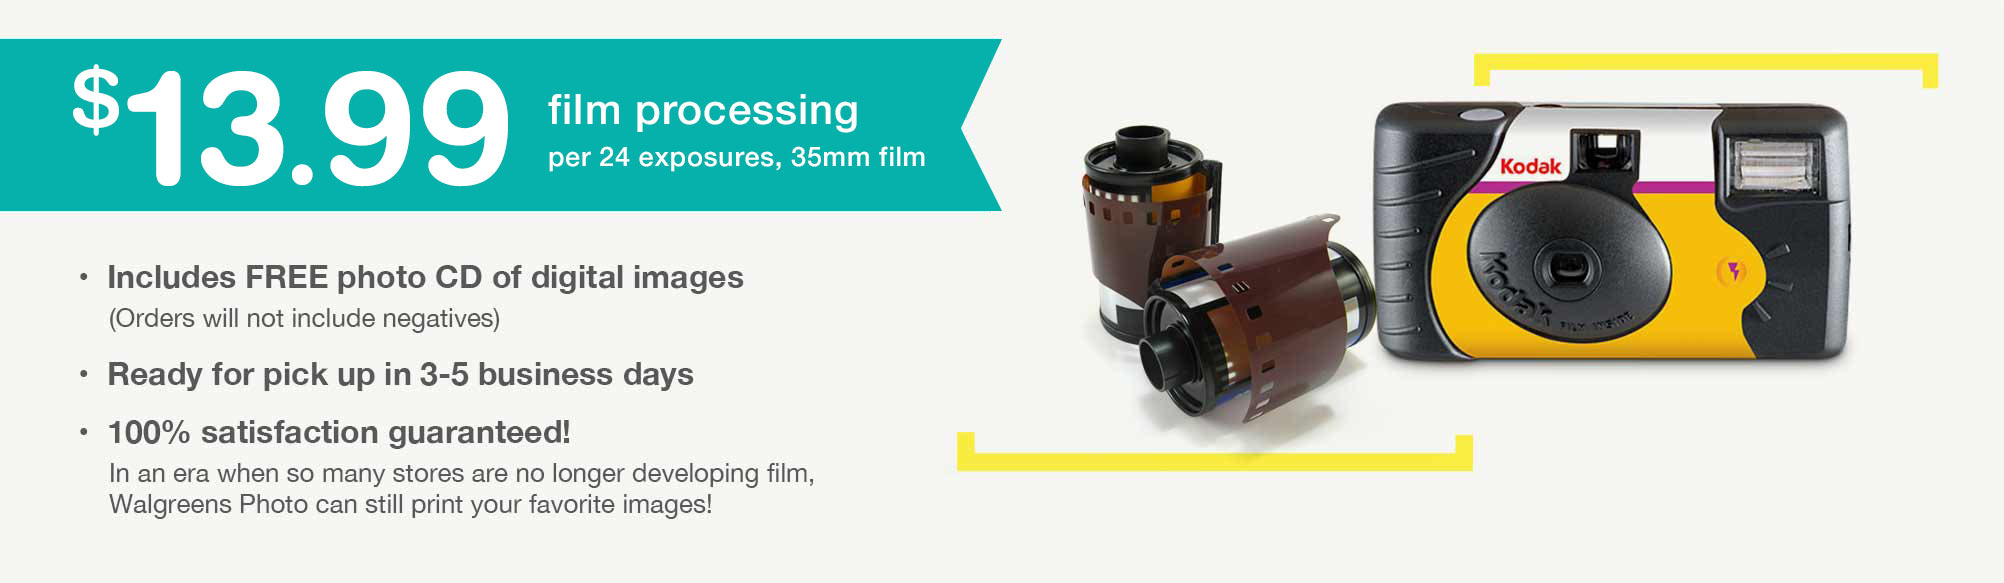 $13.99 Film Processing per 24 exposures, 35mm film. Includes FREE photo CD of digital images. (Orders will not include negatives) Ready for pick up in 3-5 business days. 100% satisfaction guaranteed!